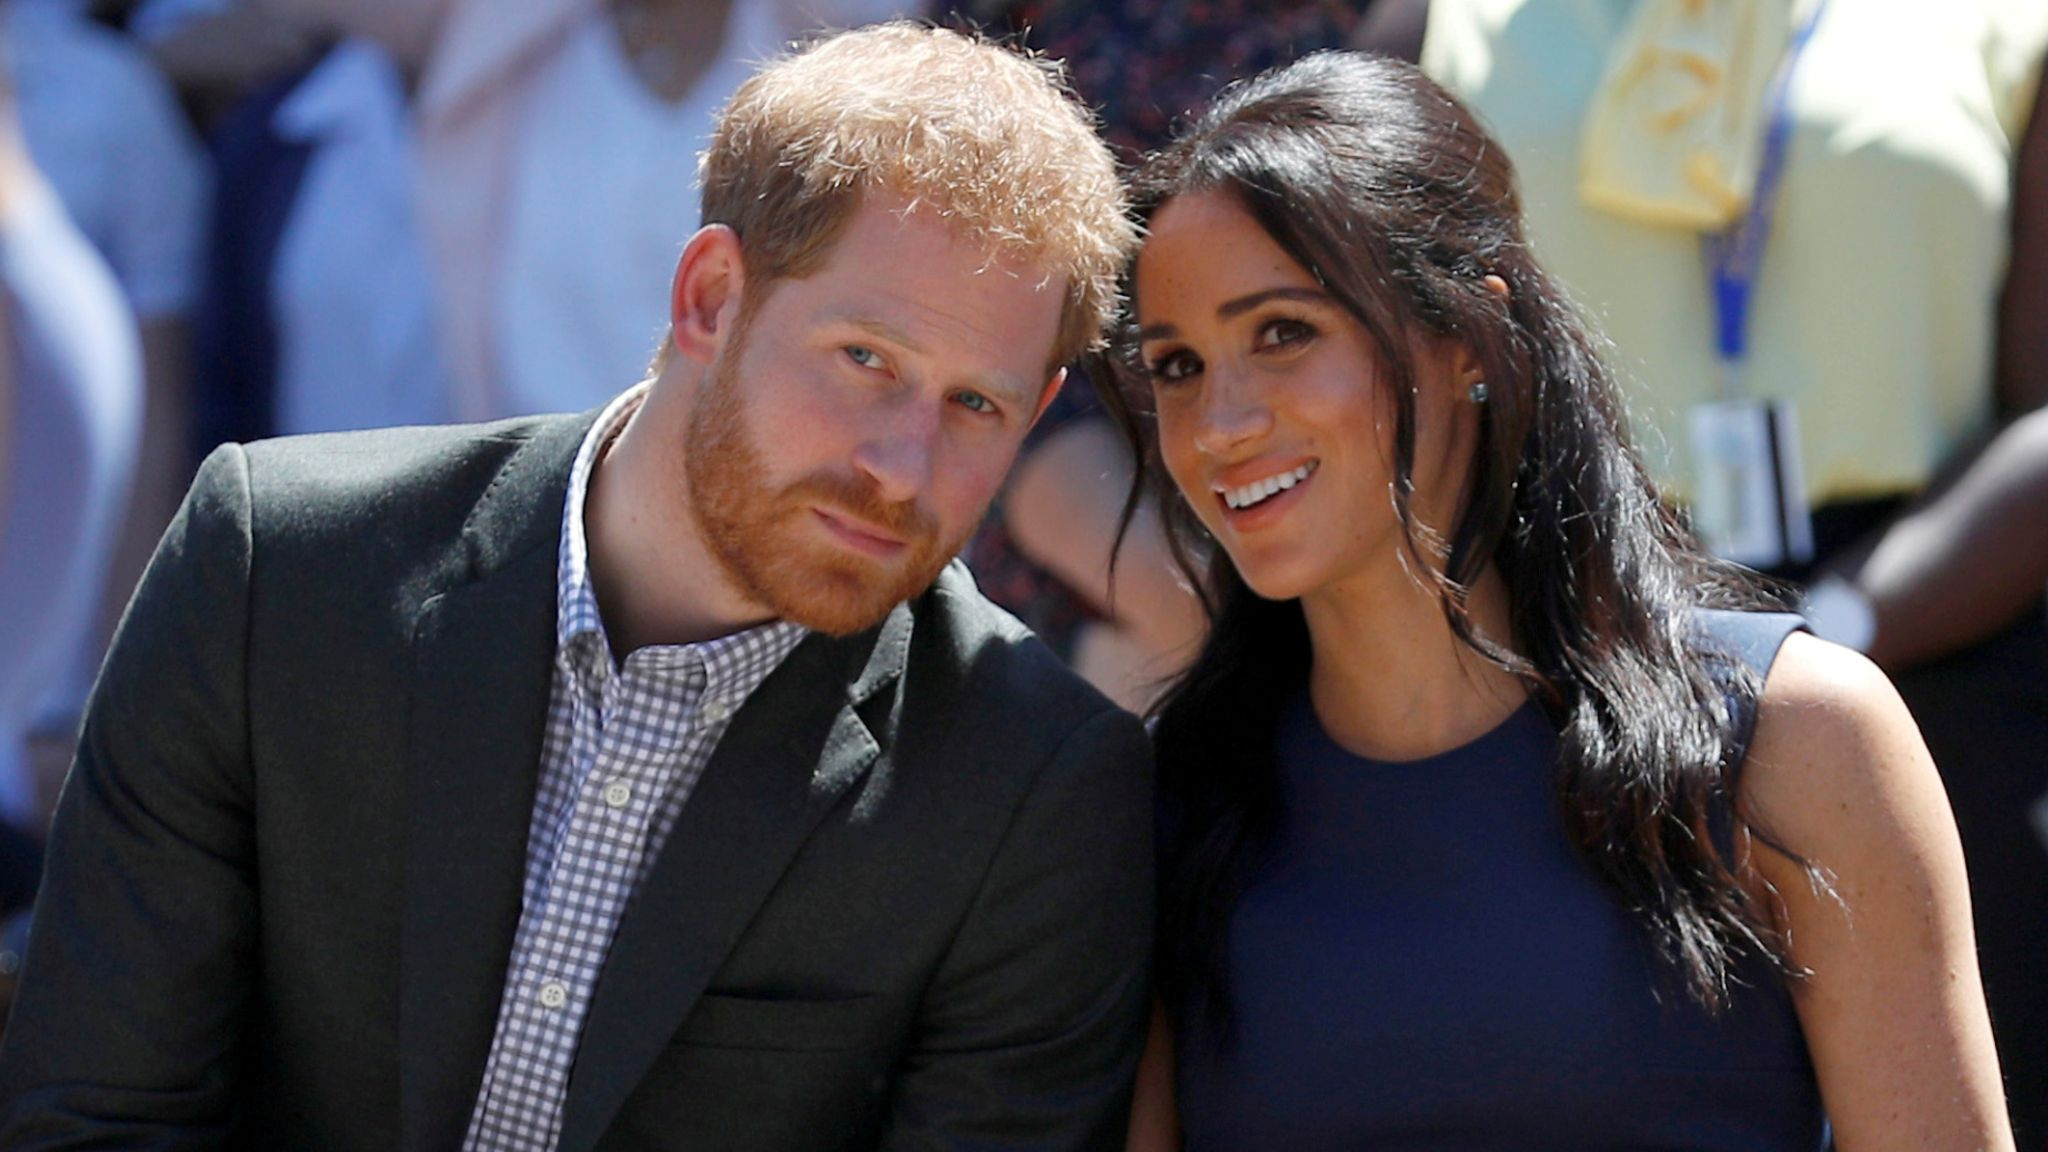 Harry and Meghan to lose royal funds and HRH titles from spring